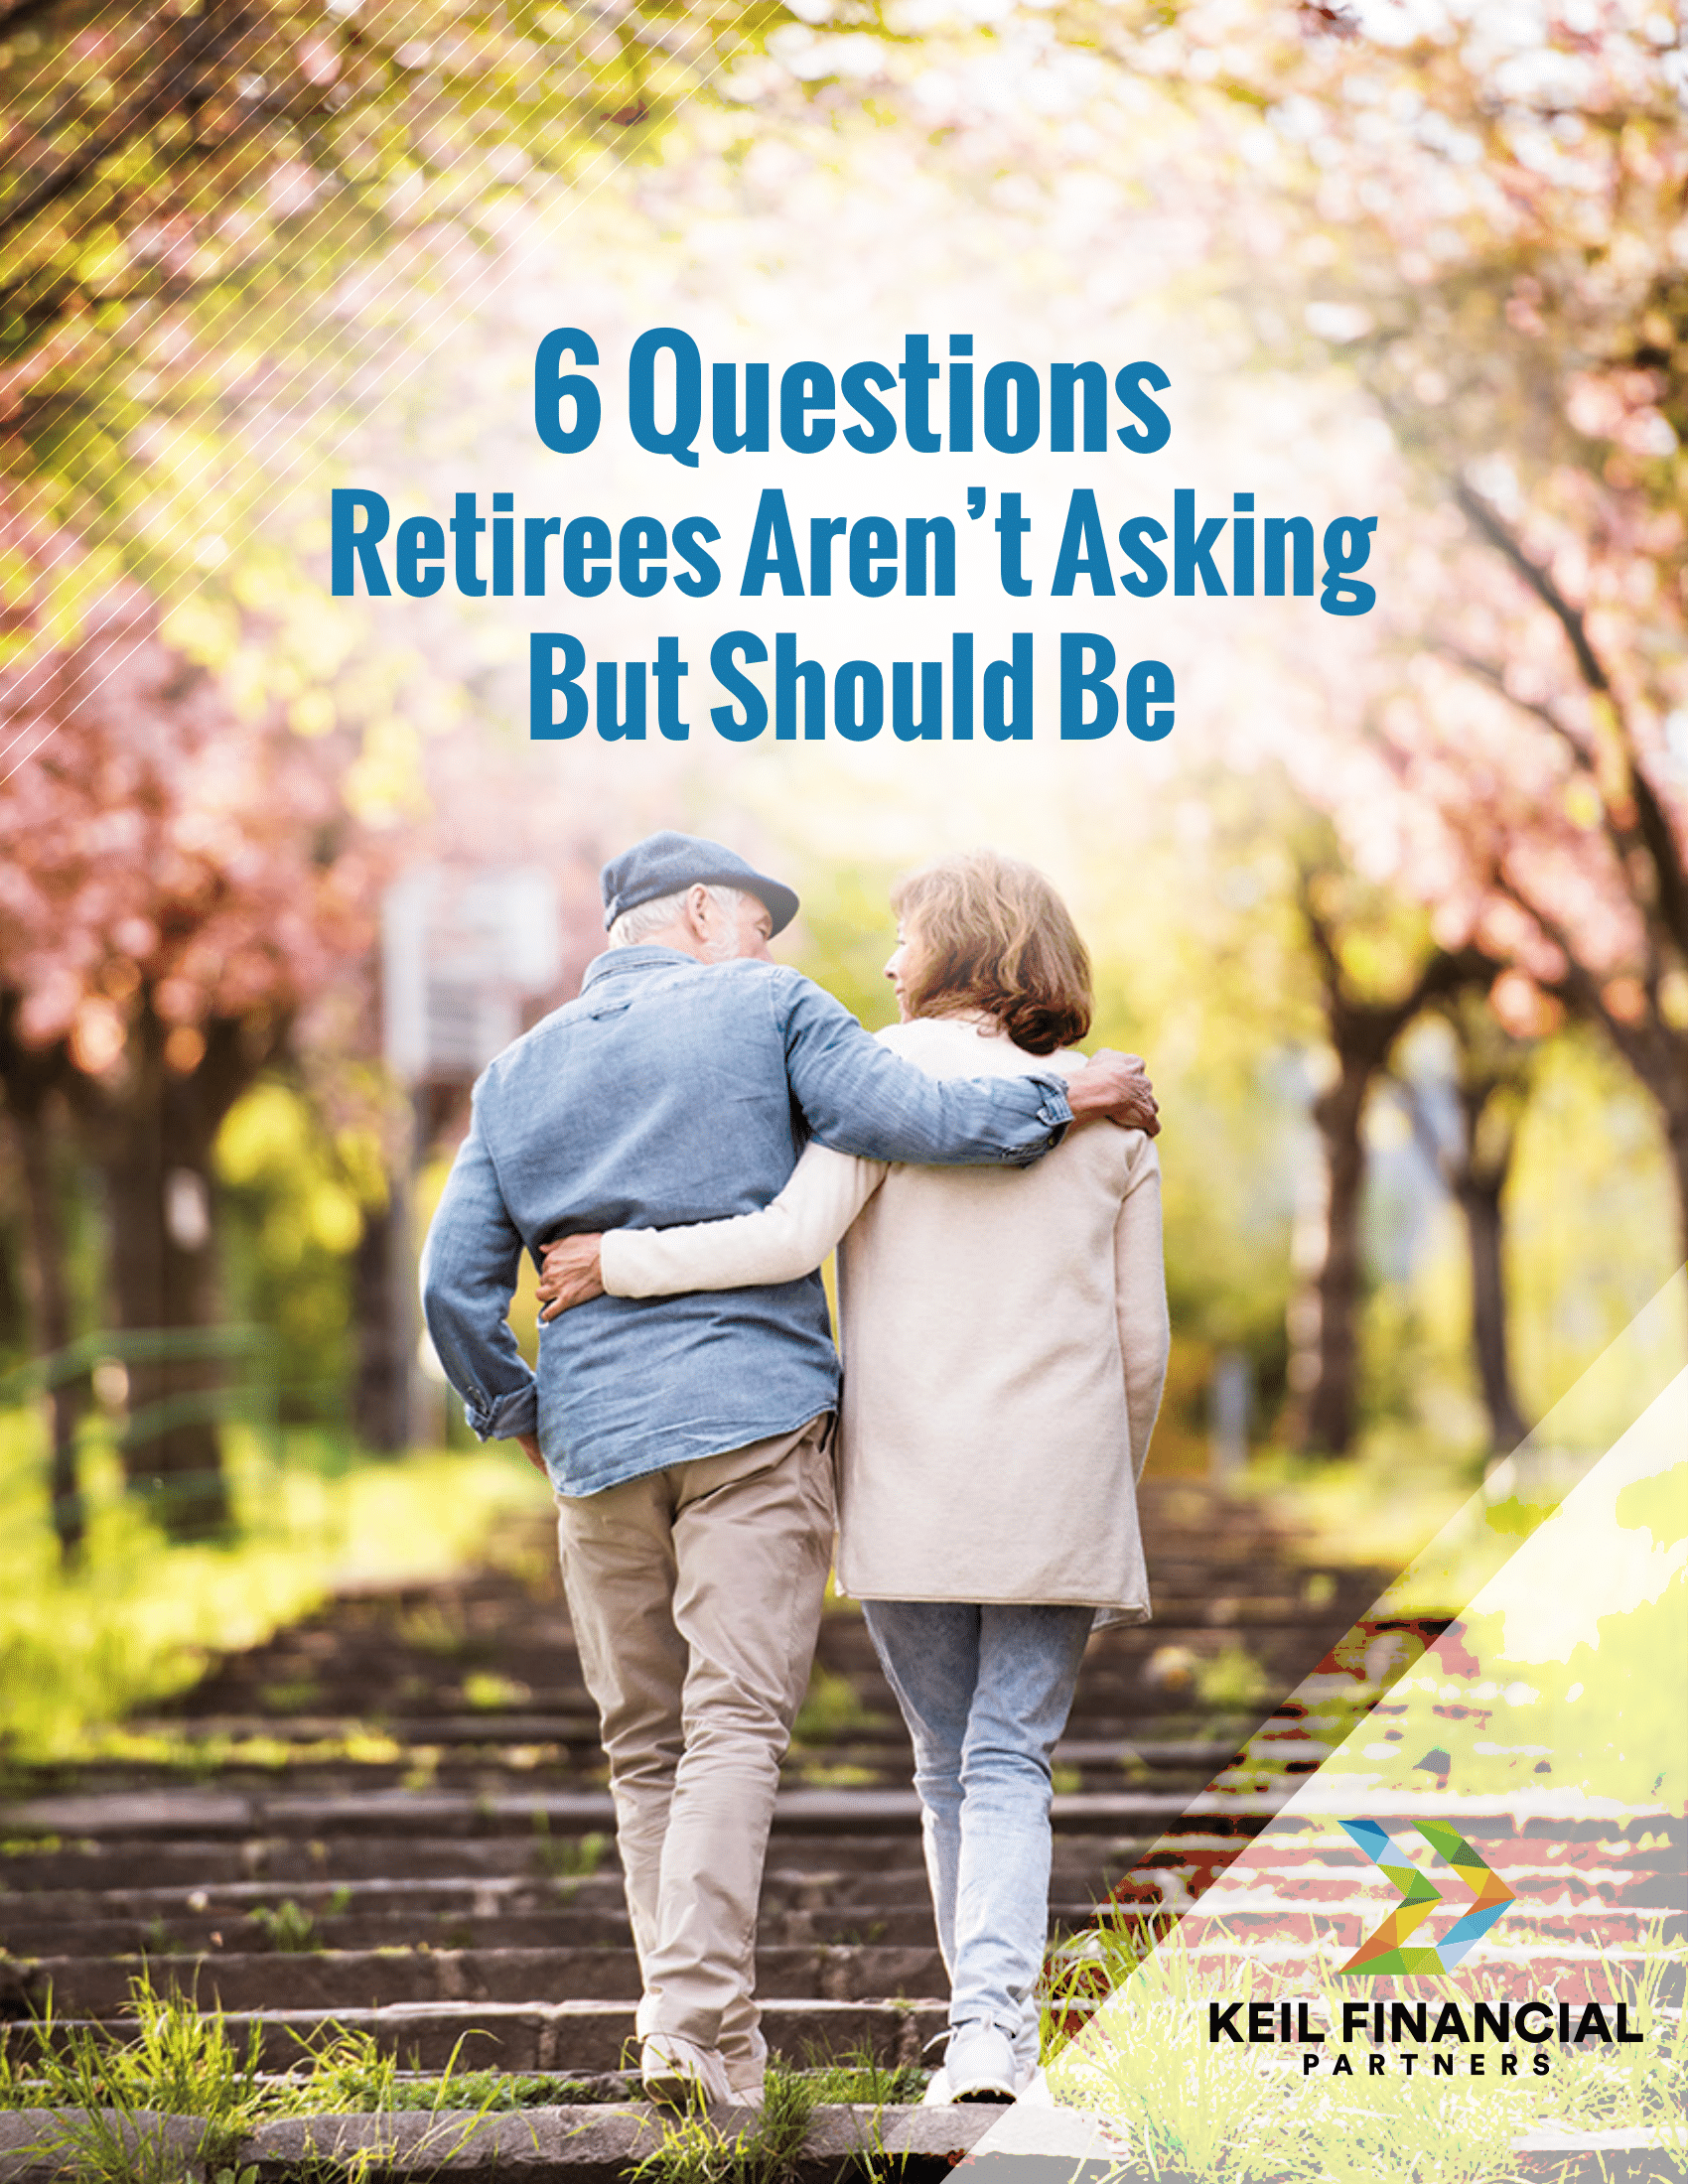 What Questions Should Retirees Ask